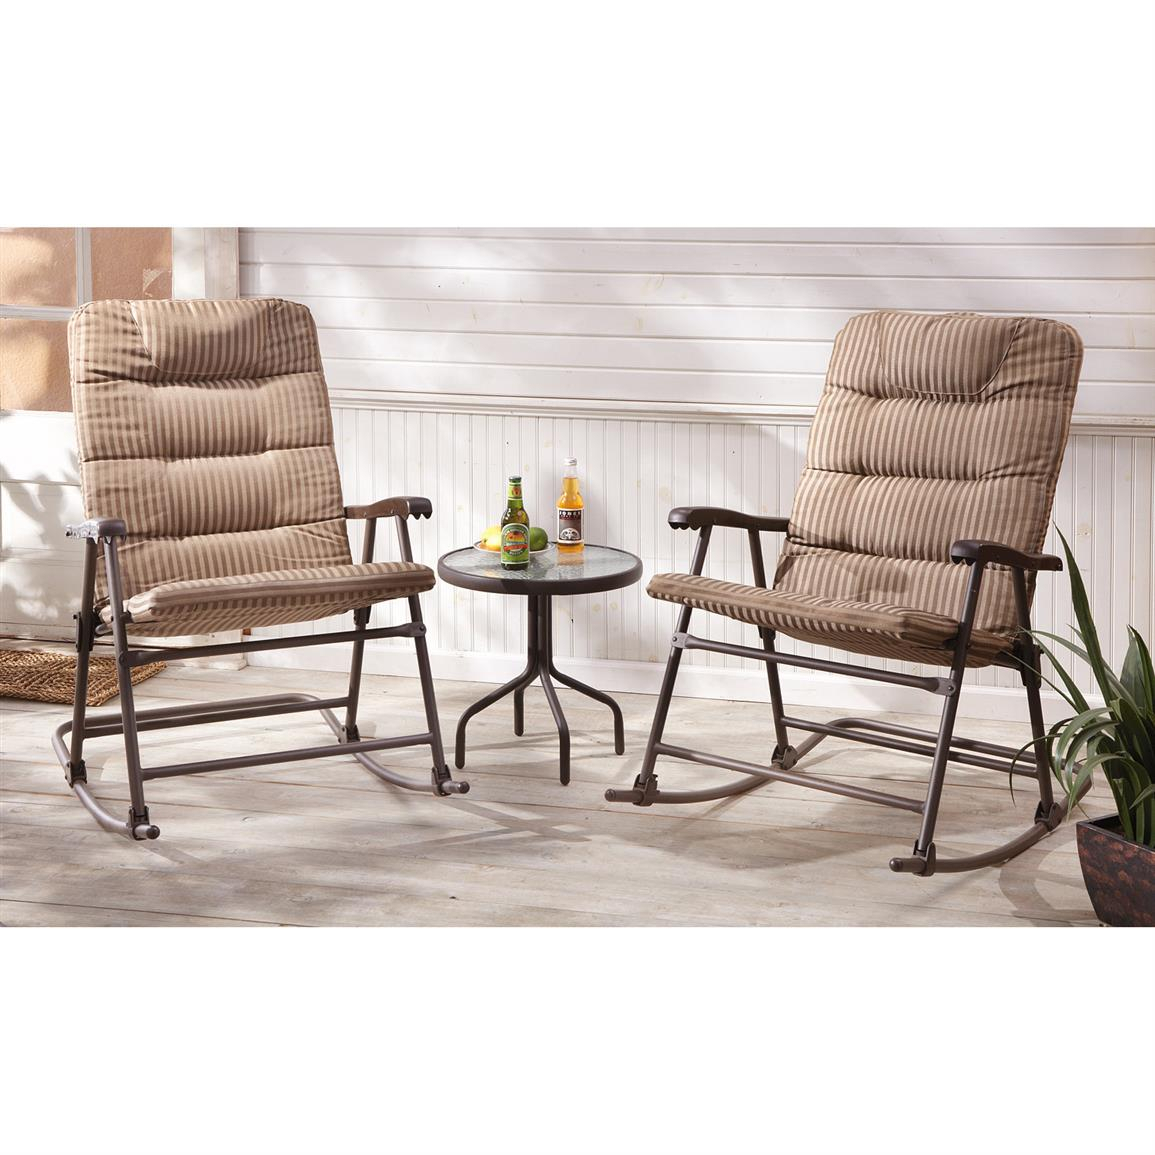 Castlecreek Padded Outdoor Rocking Chair Set, 3 Piece With Padded Rocking Chairs (#5 of 20)